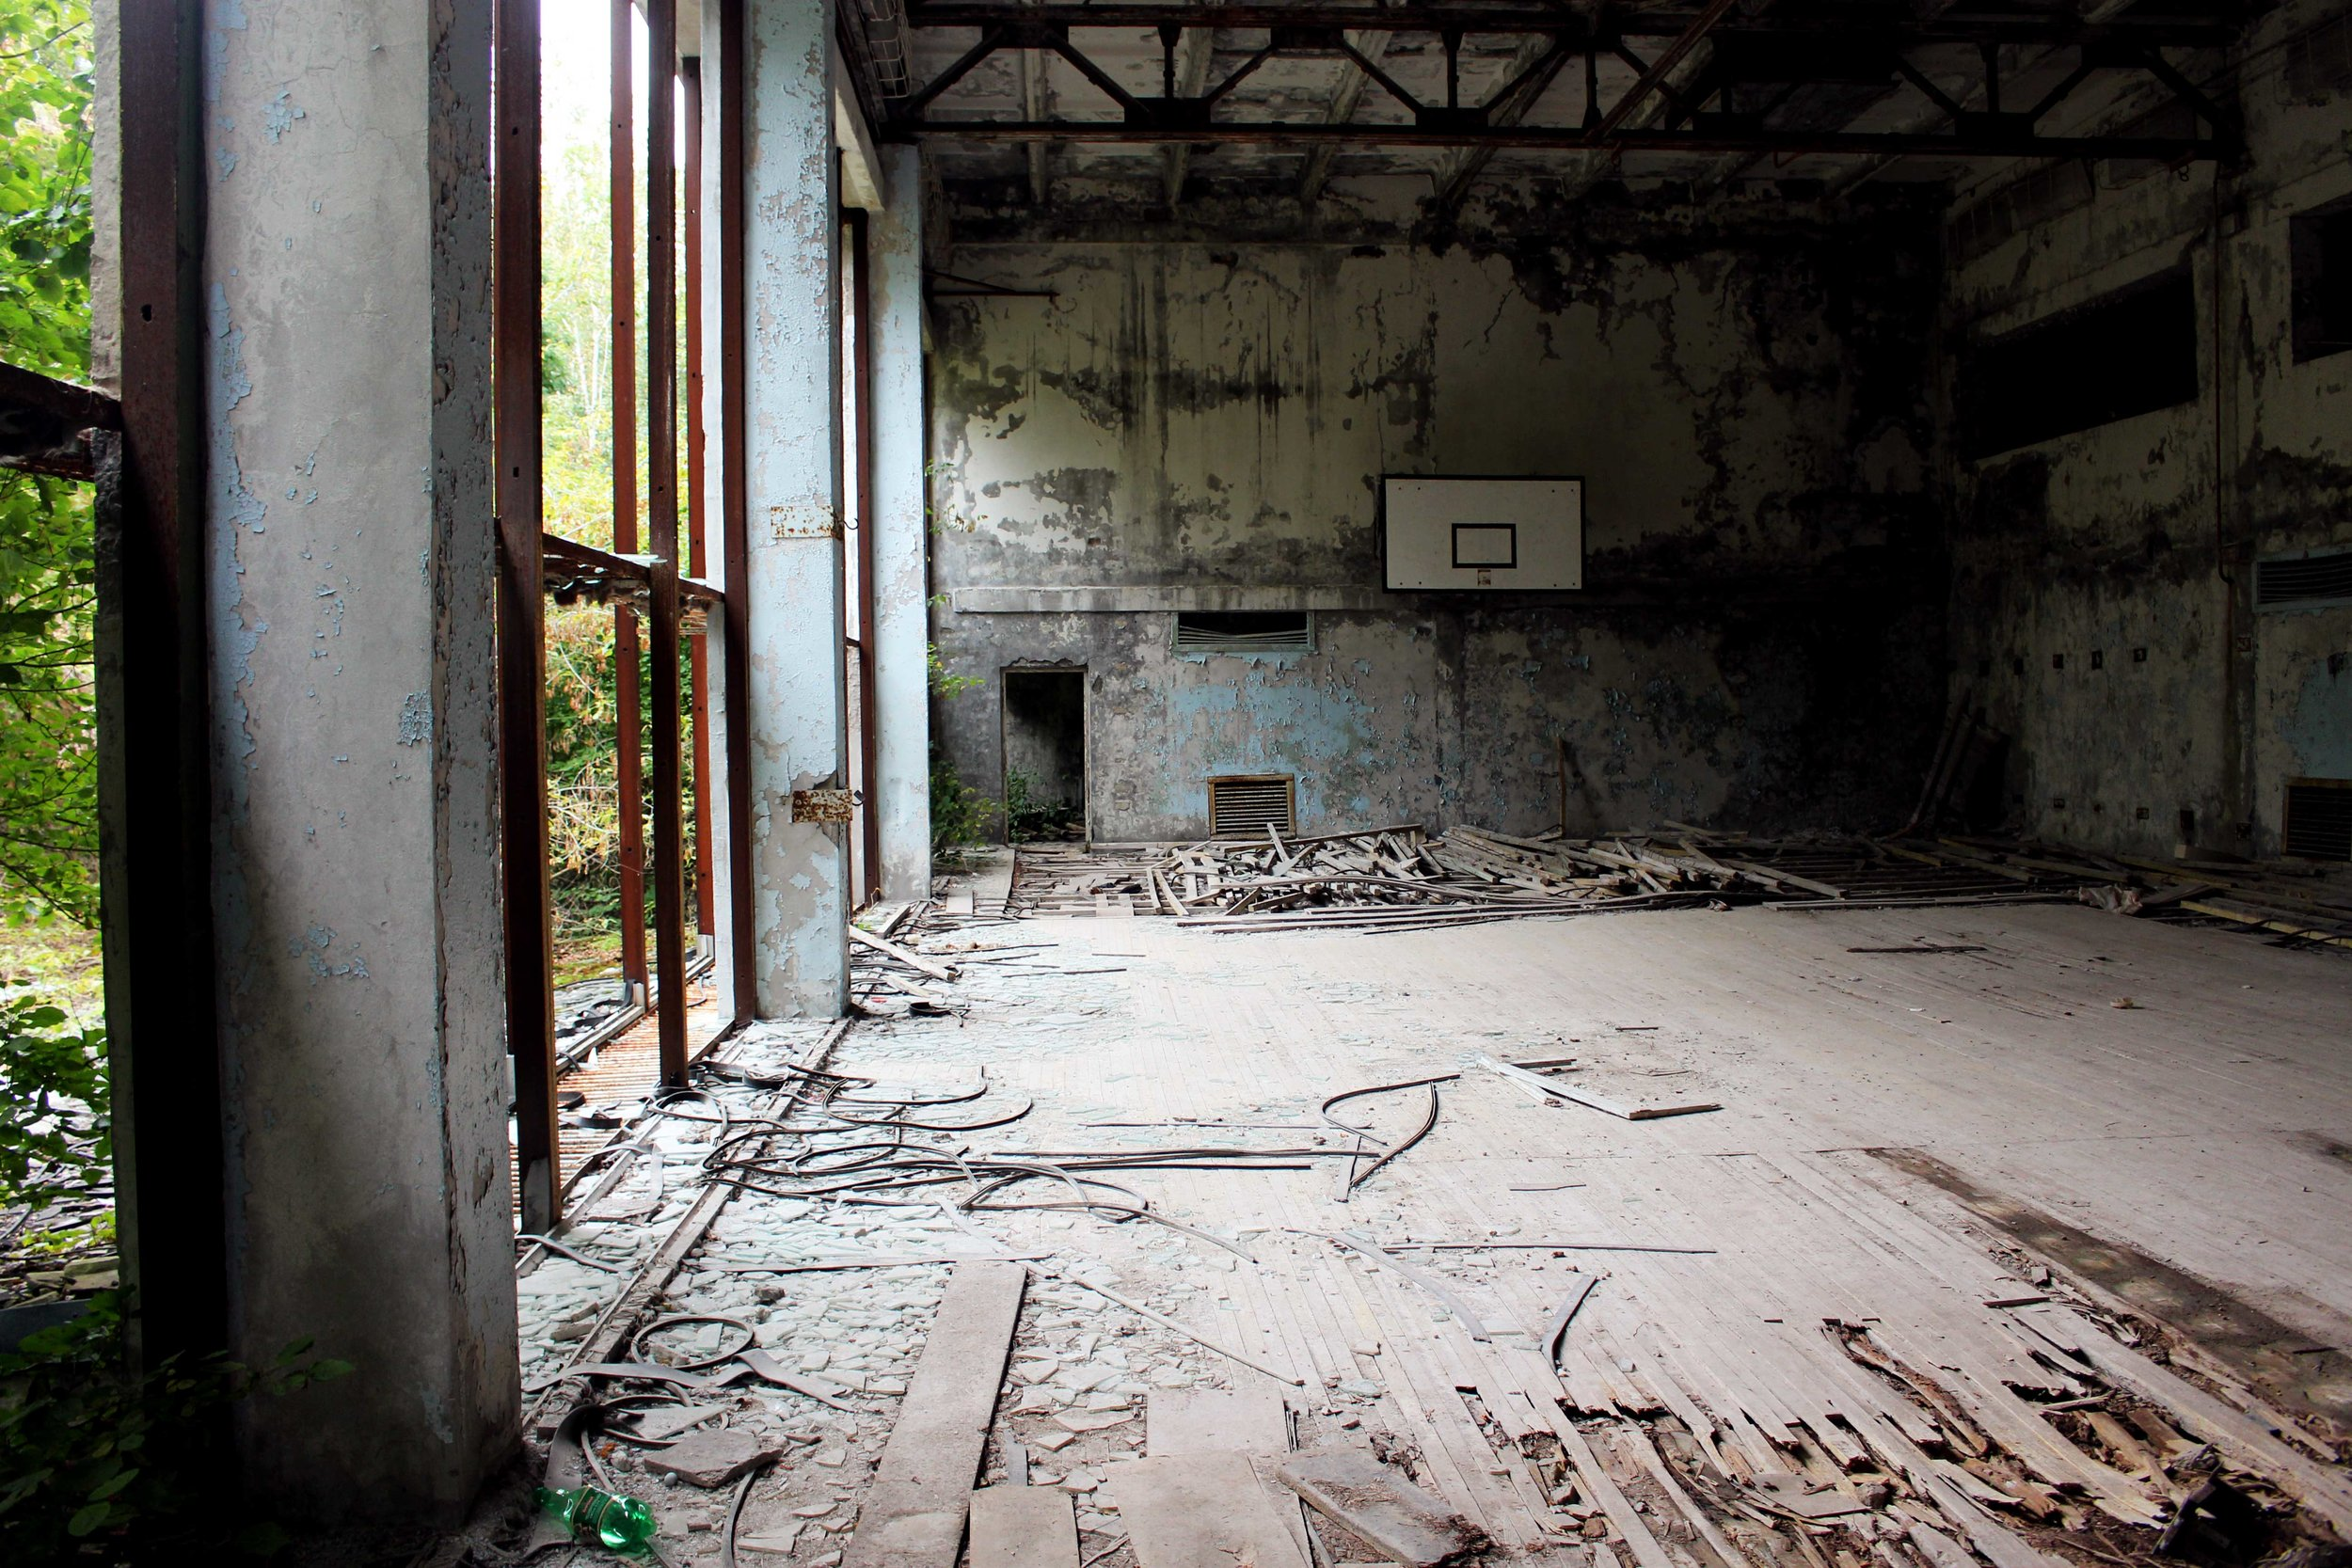 We walked through a gym of one of the schools.